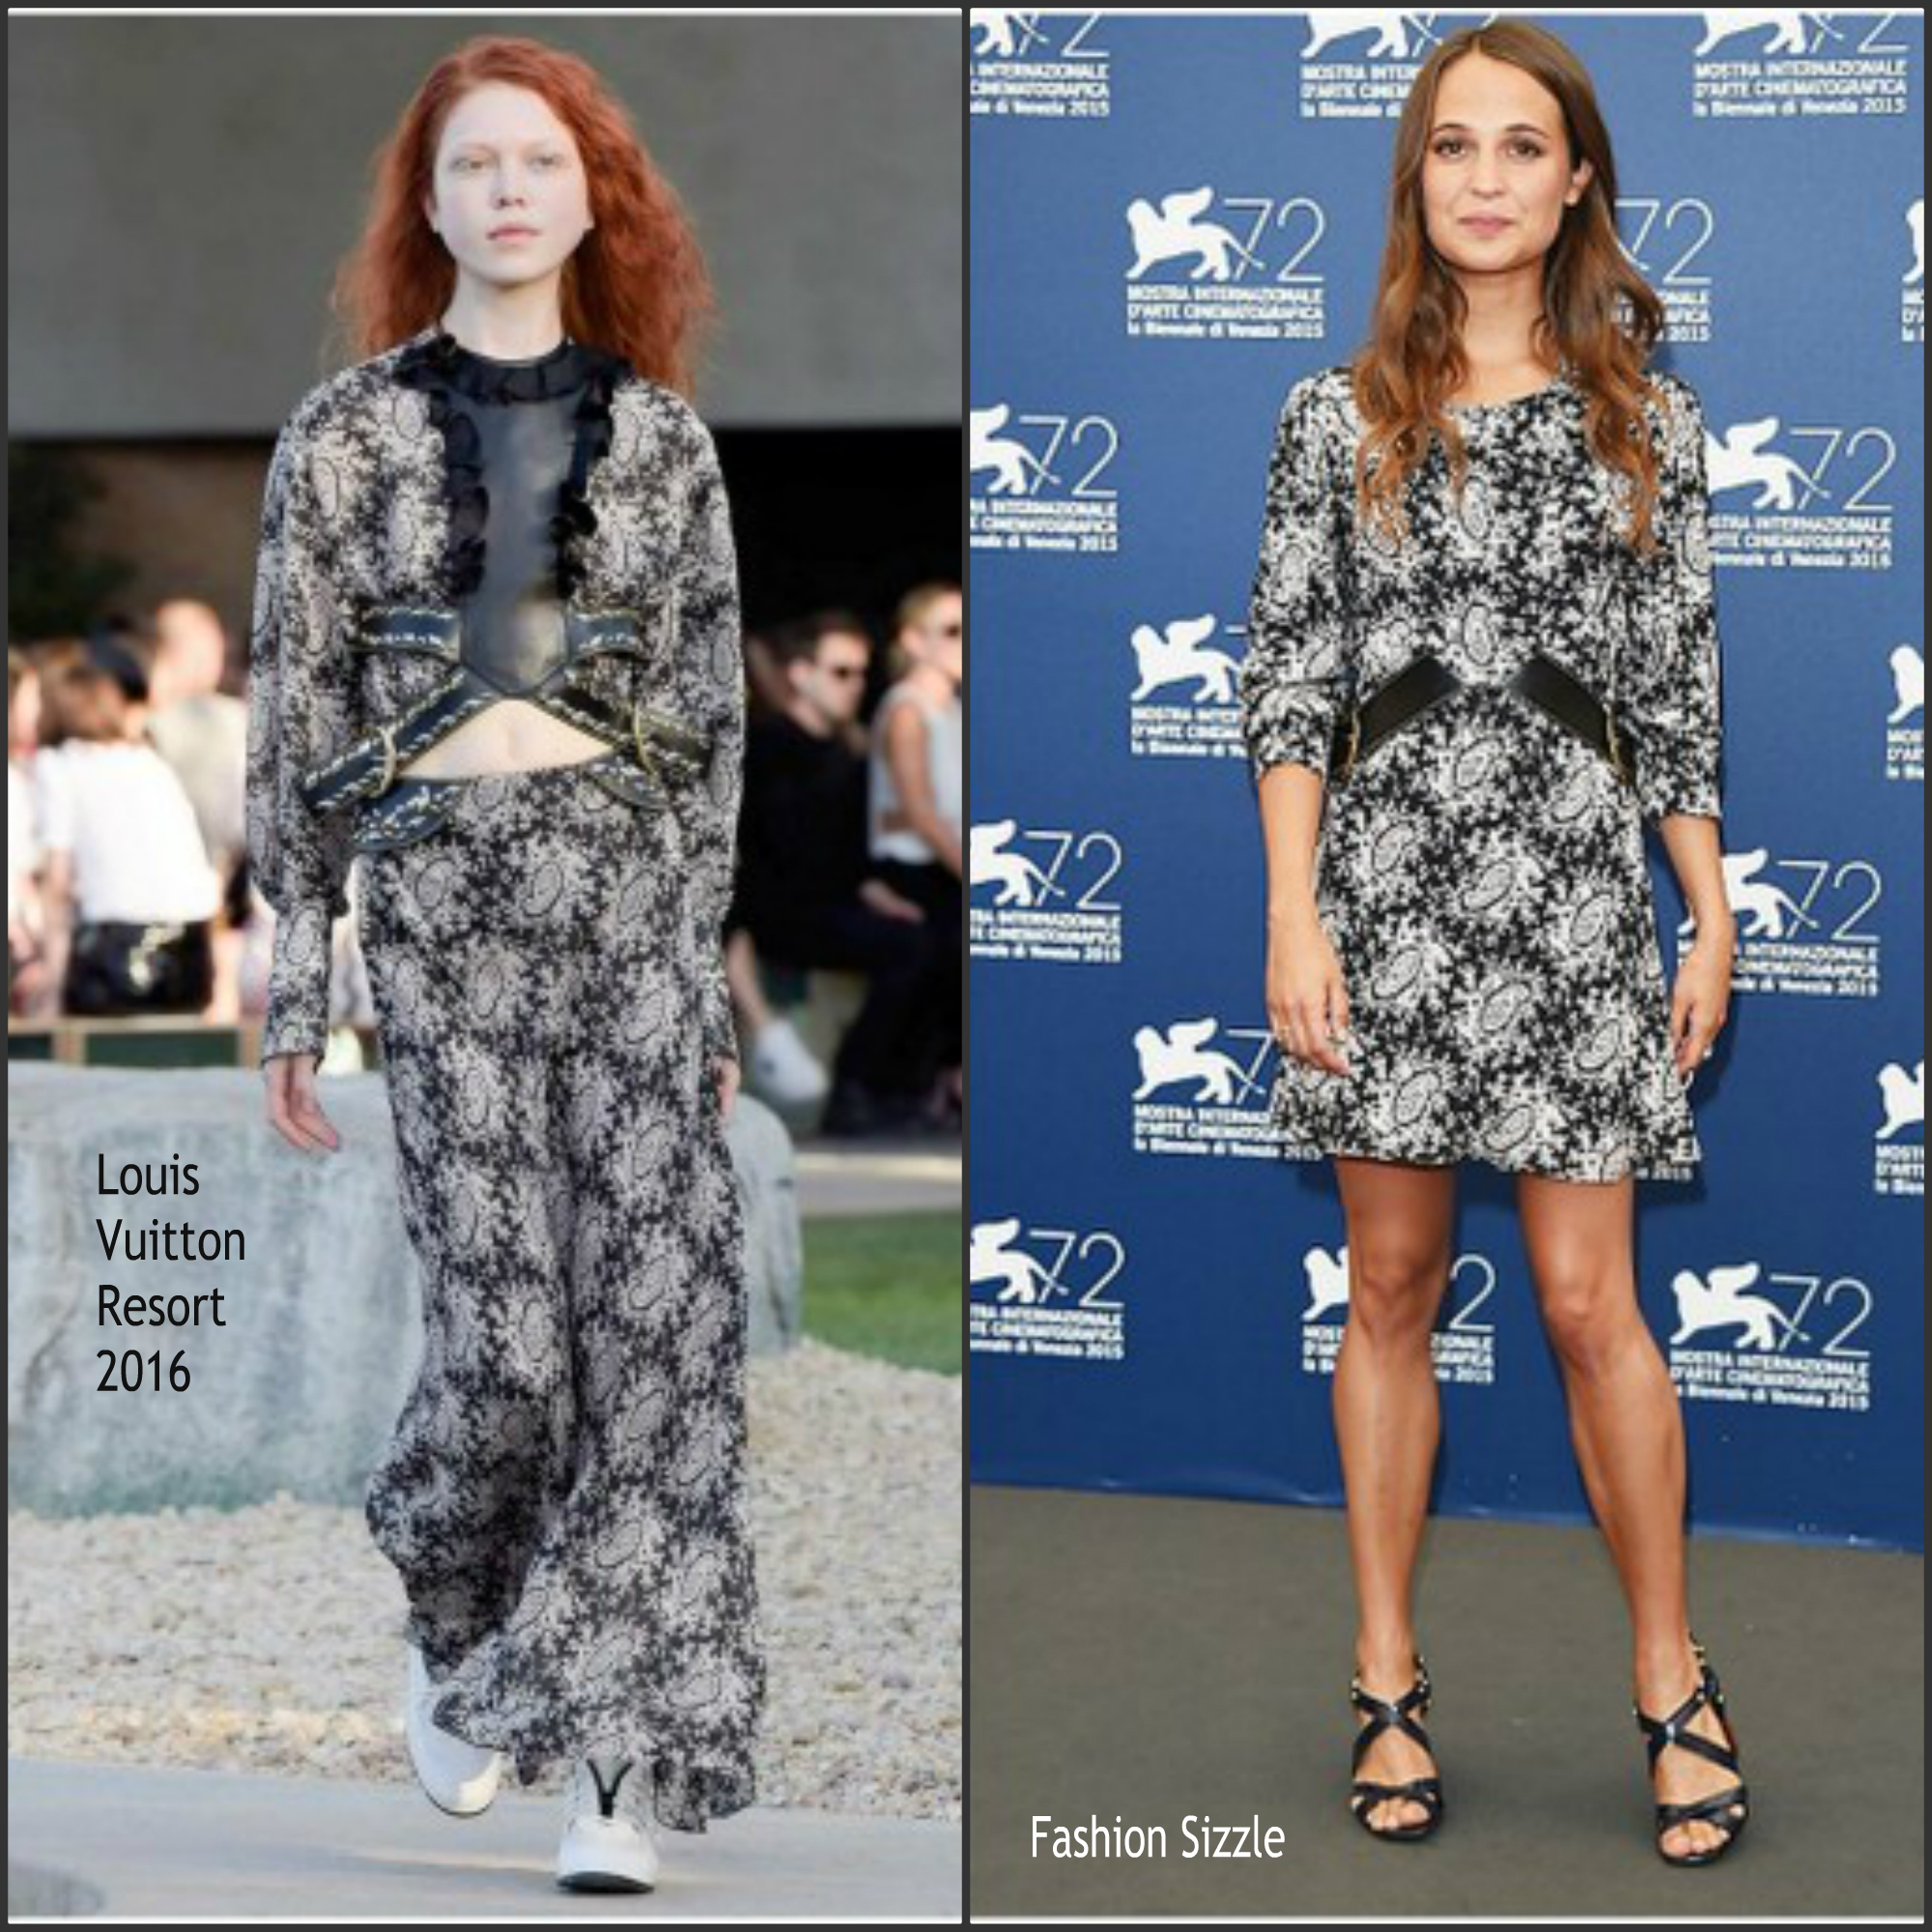 alicia-vikander-in-louis-vuitton-the-danish-girl-venice-film-festival-photocall